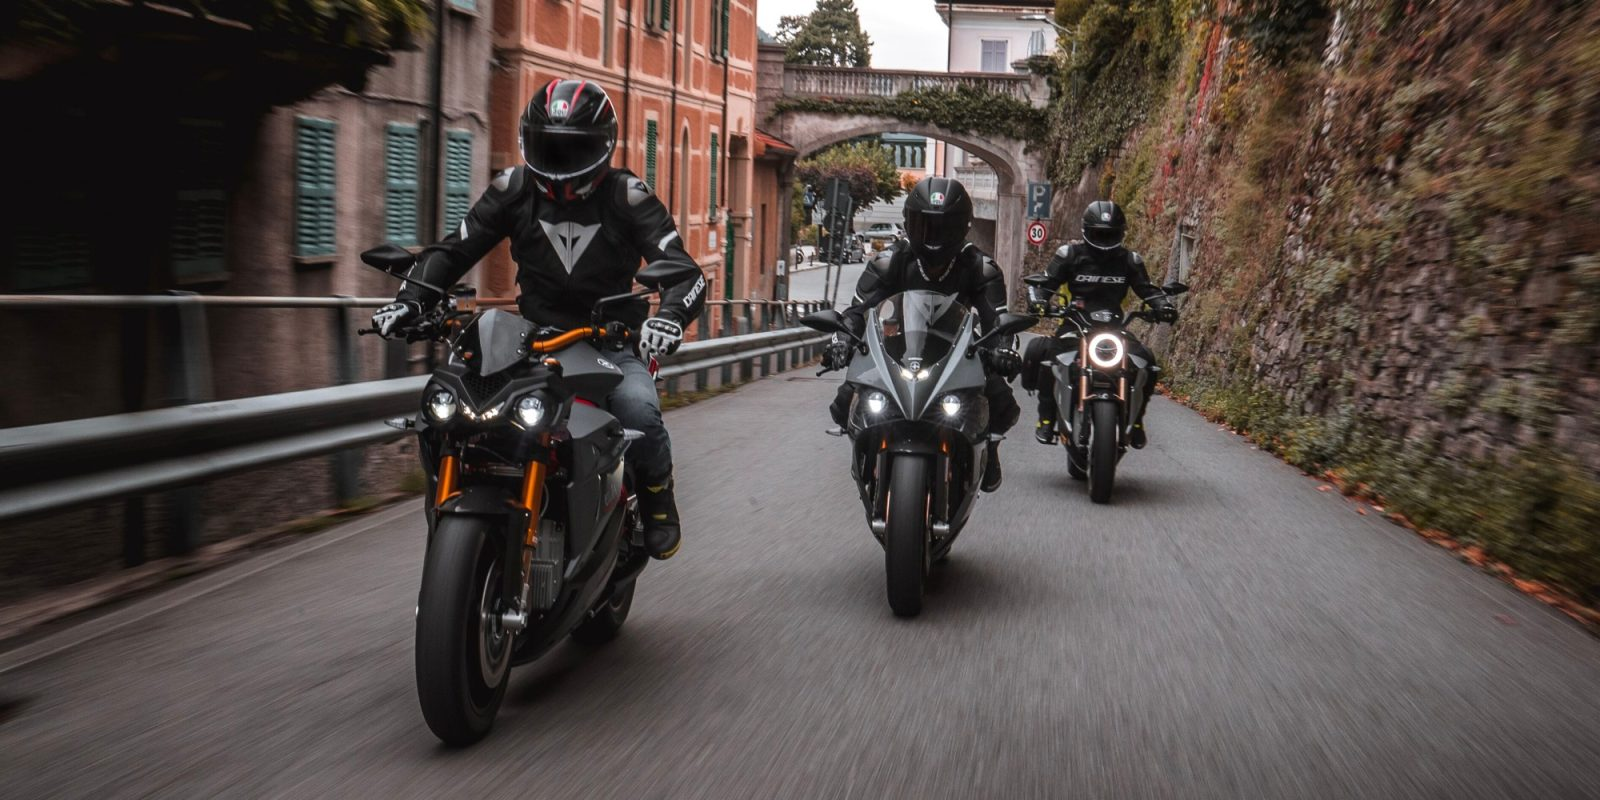 Energica electric motorcycle sales are booming, spur increased production